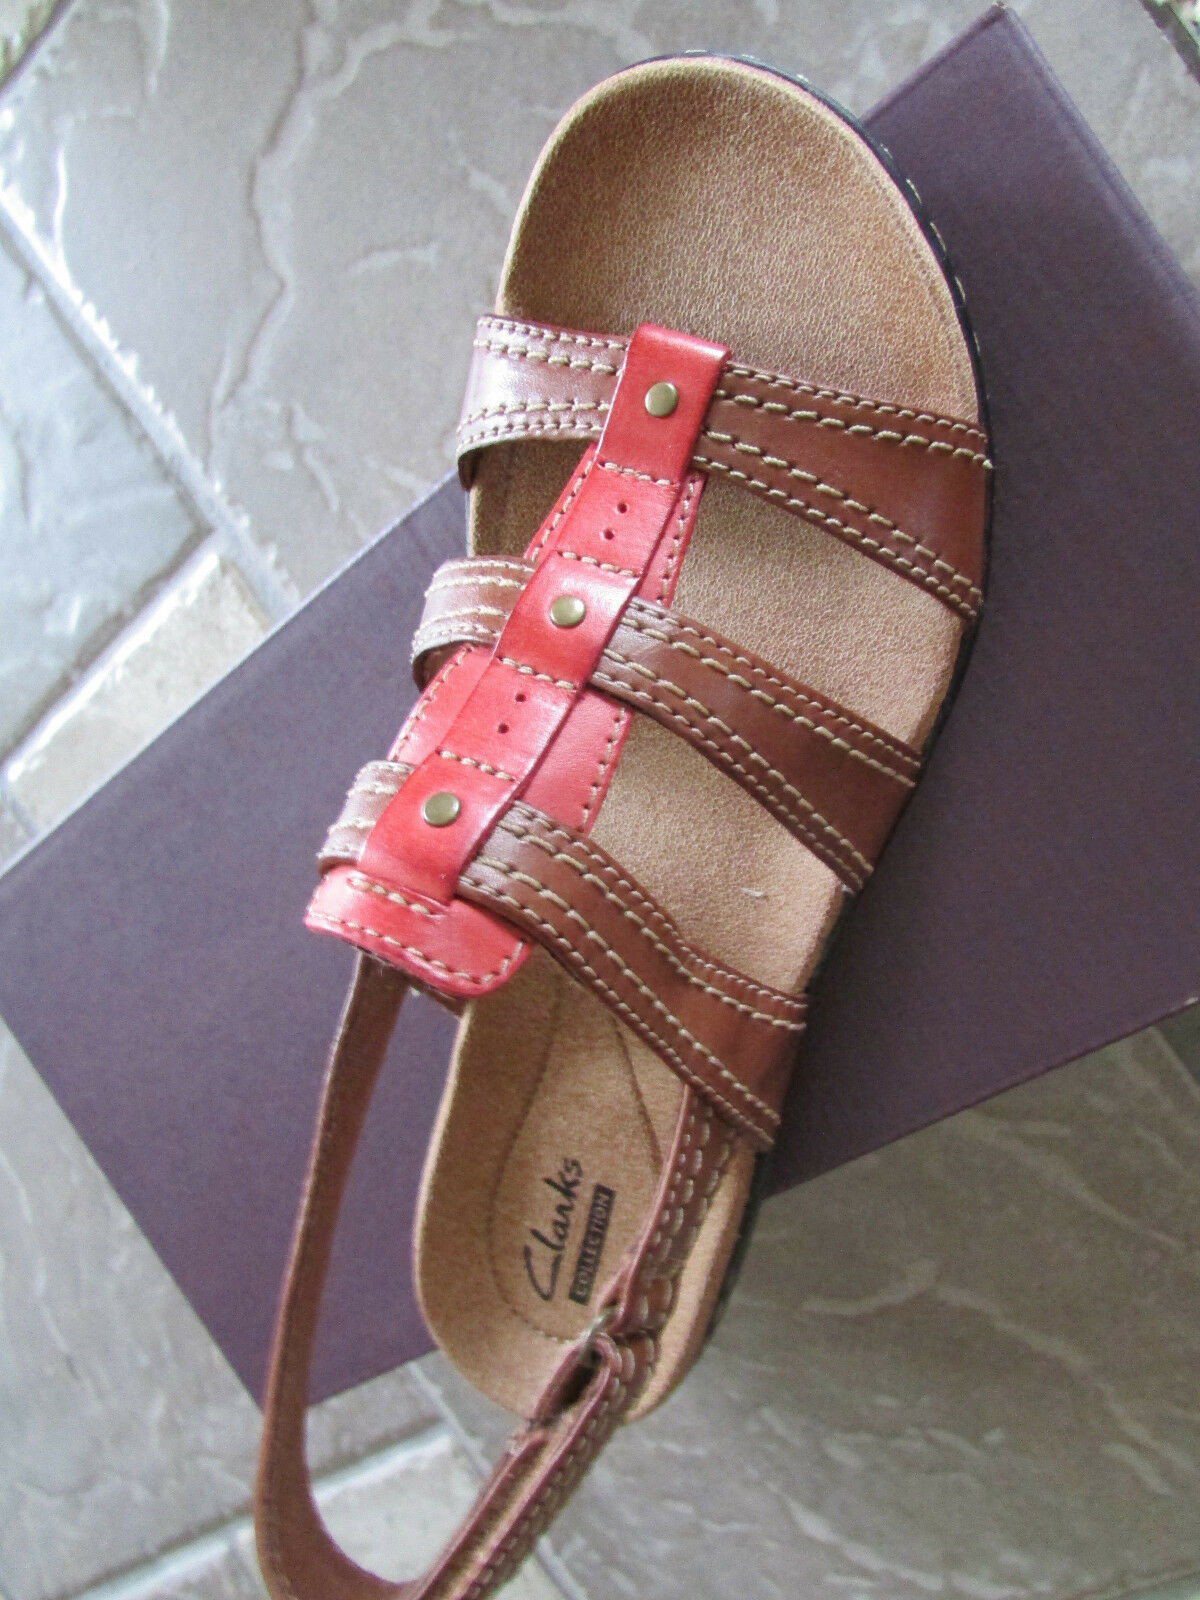 NEW CLARKS LEISA DAISY TAN STYLE: STRAPPY SANDALS Damenschuhe 9 STYLE: TAN 05194 FREE SHIP ba4491